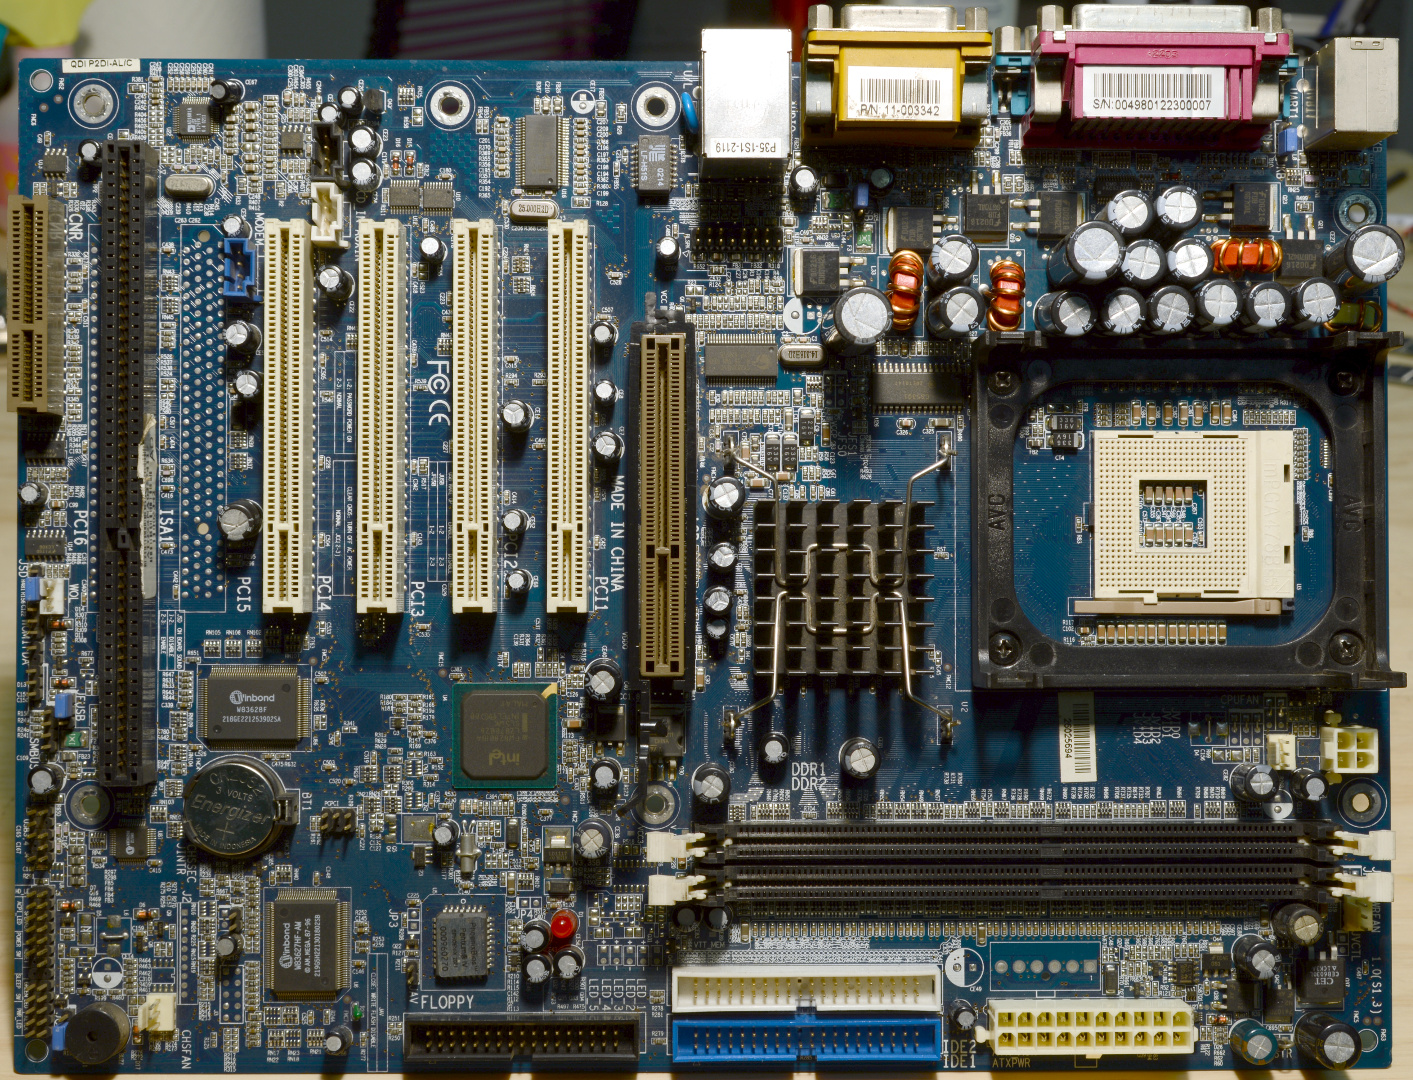 INTEL 845GL GV MOTHERBOARD WINDOWS XP DRIVER